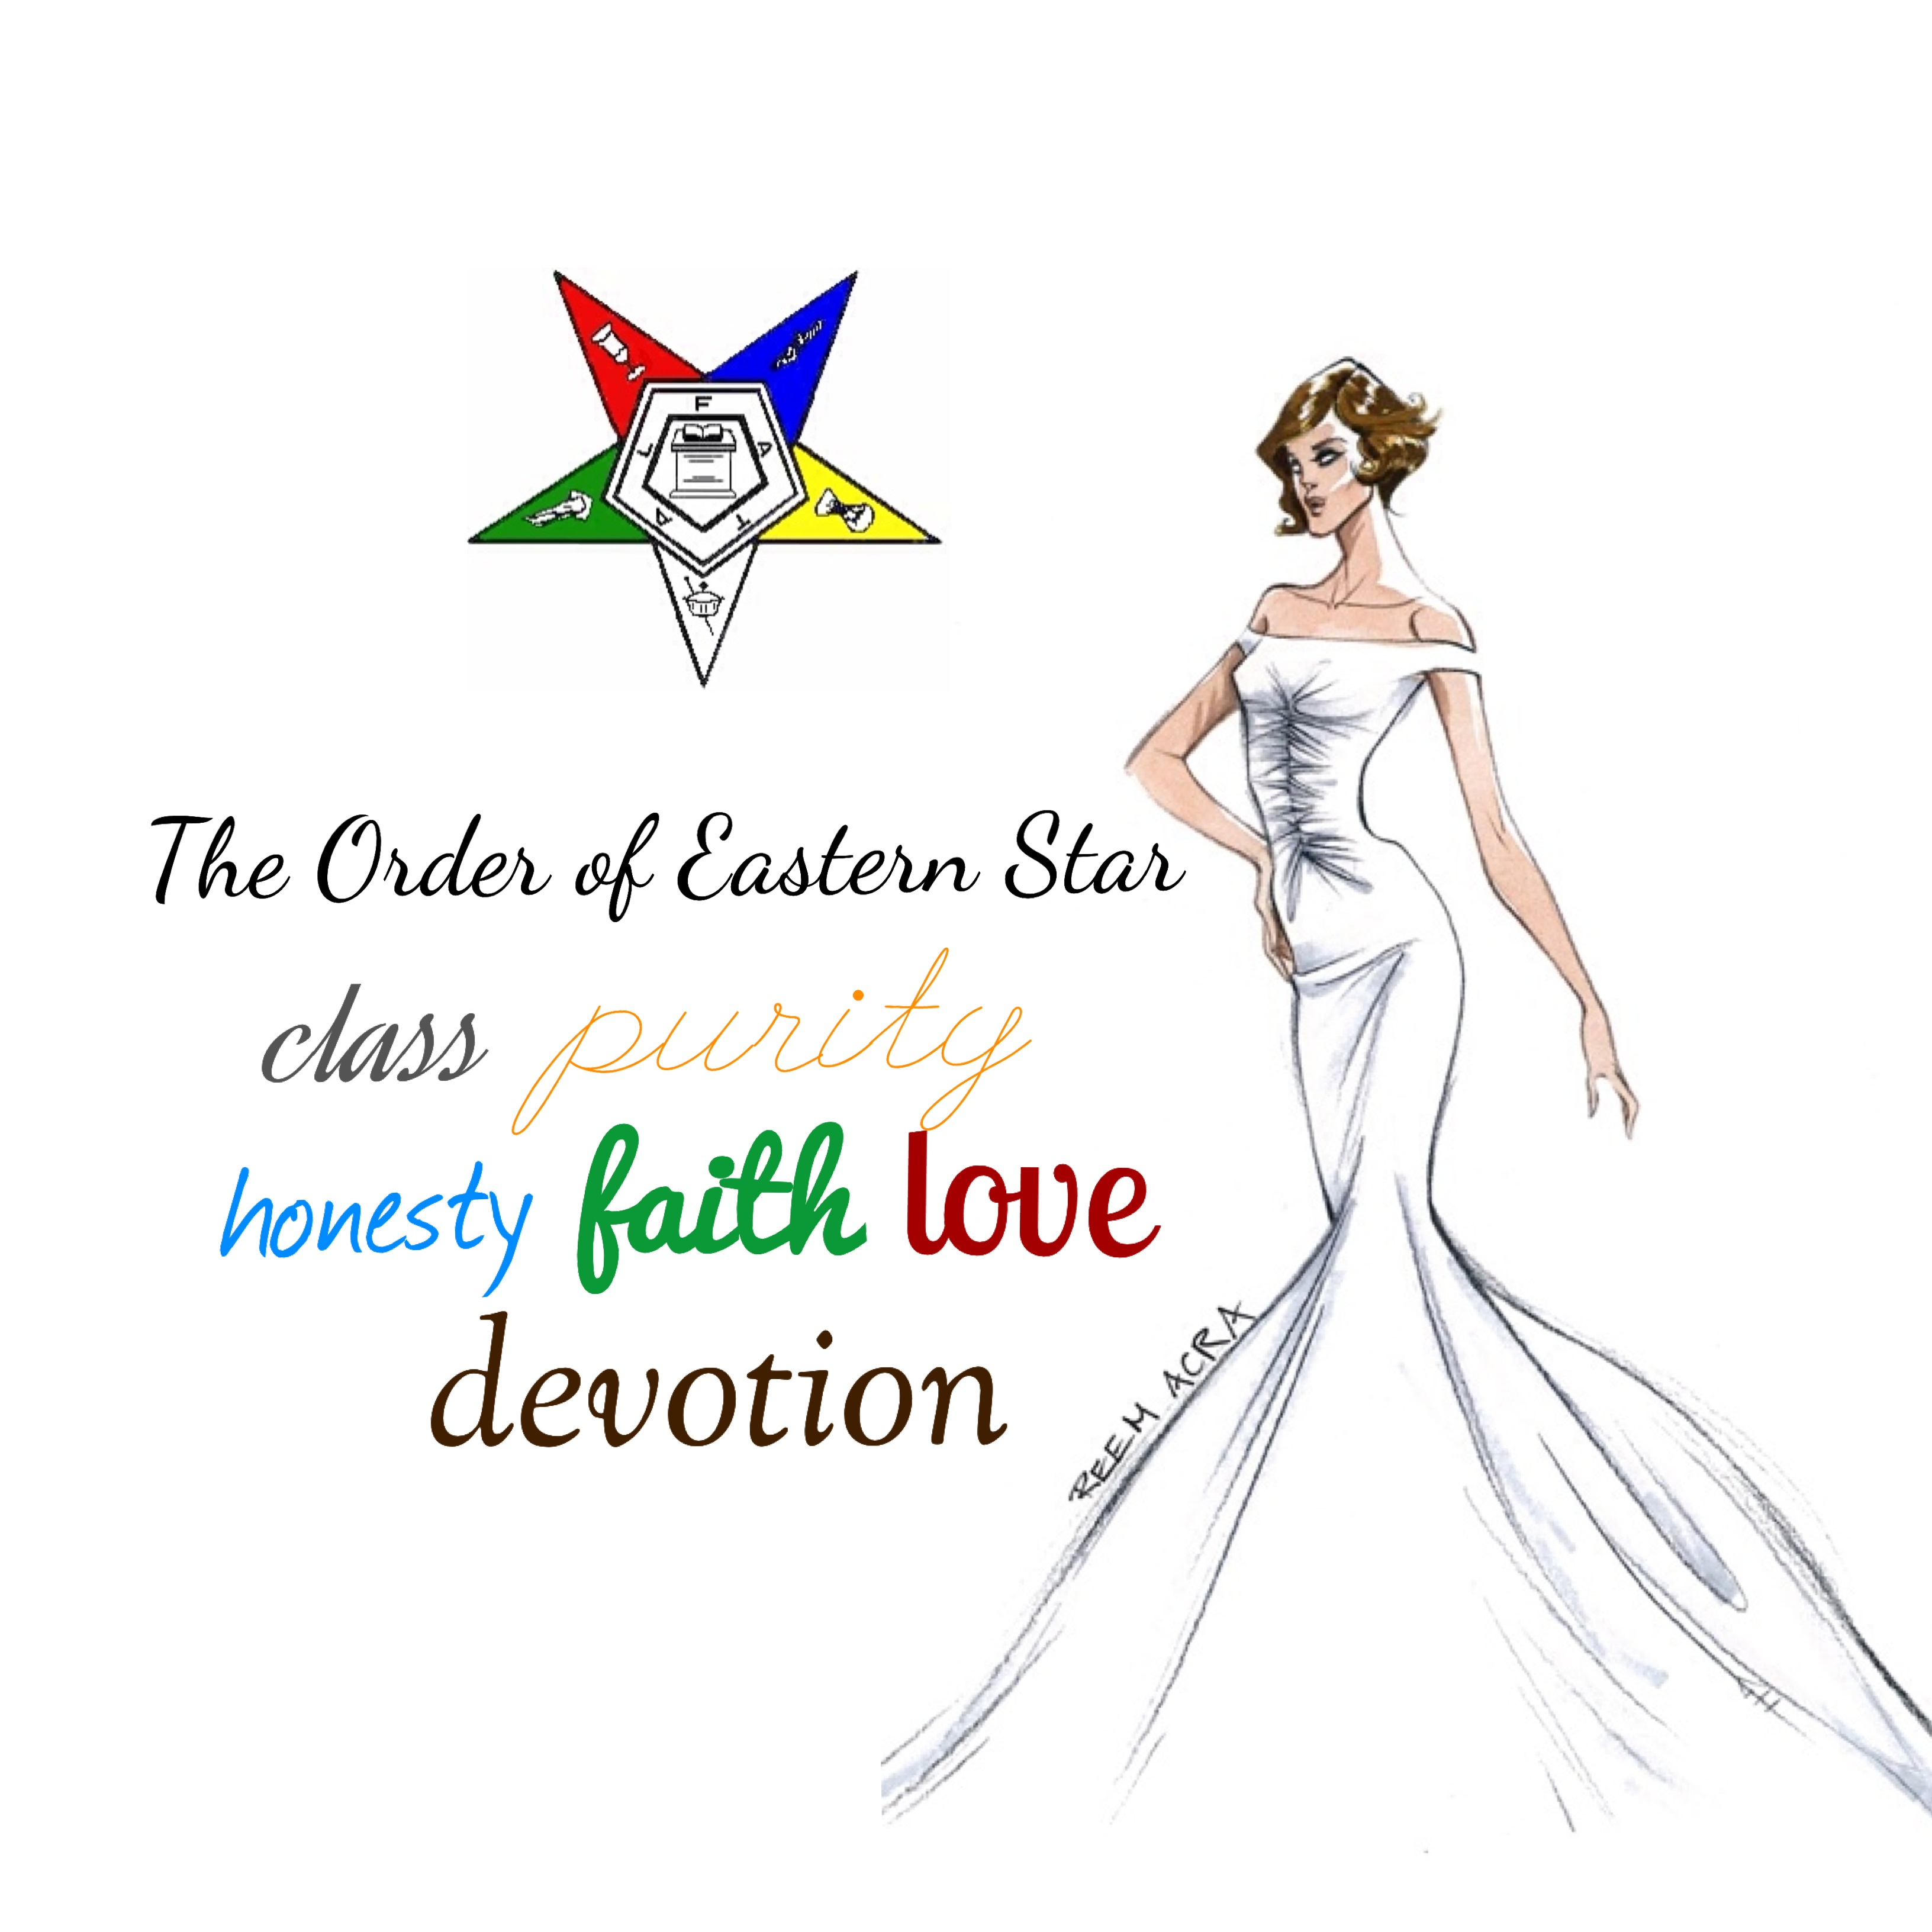 Order Of Eastern Star Clip Art I Designe-Order of Eastern Star clip art I designed! | Sisterhood | Pinterest | The ou0026#39;jays, Fashion stores and Clip art-16